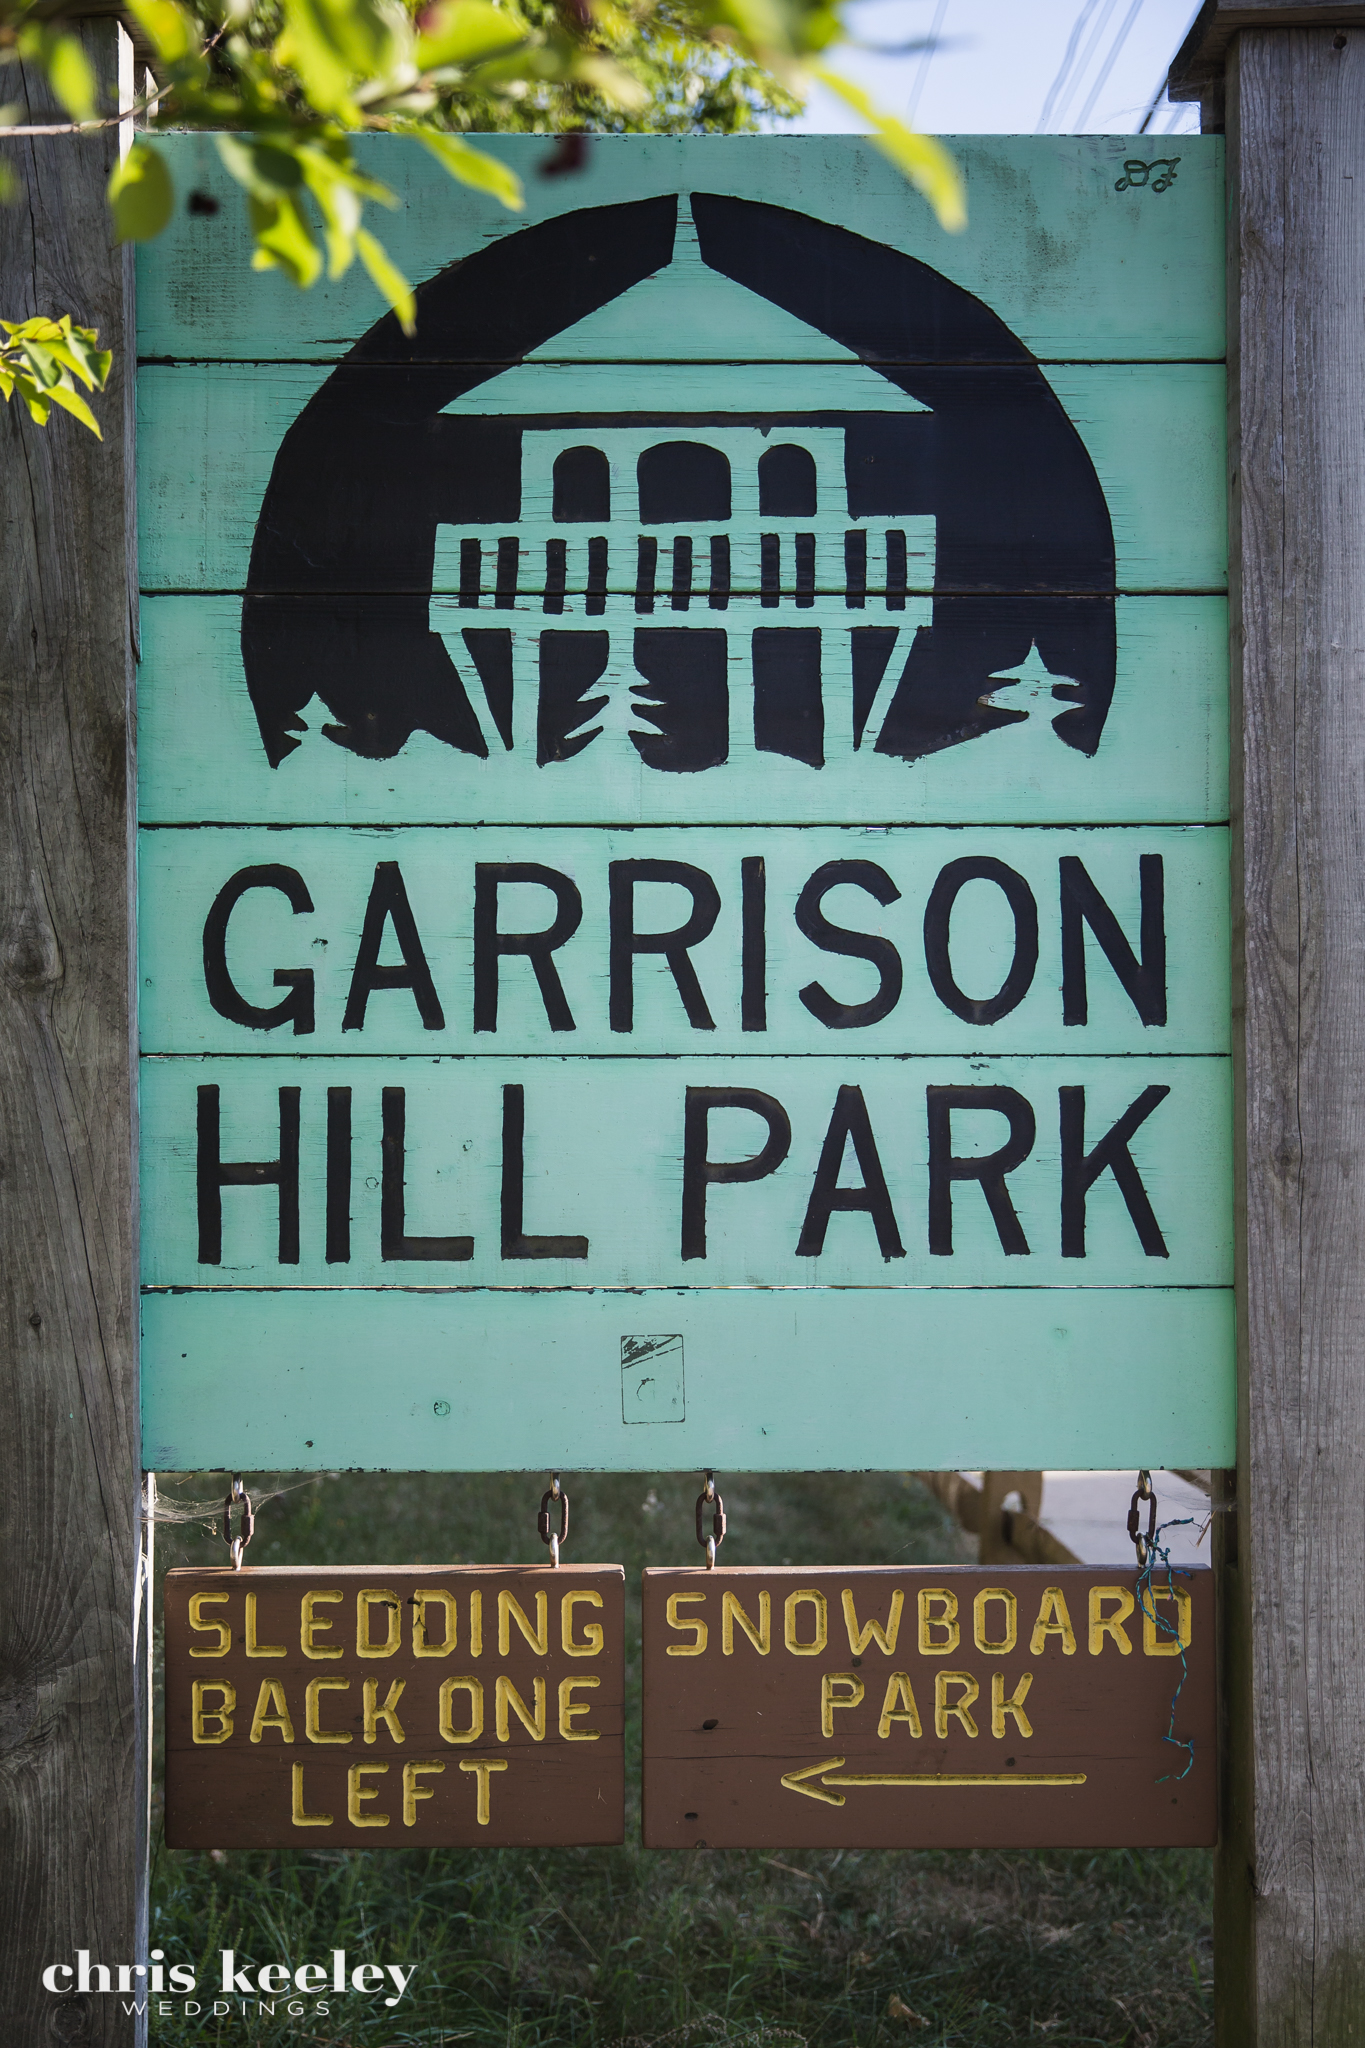 Garrison Hill Tower in Dover, New Hampshire is an iconic 9-story tower overlooking Dover and the greater New Hampshire Seacoast. You can see Portsmouth & Newington on a clear day, and even the White Mountains.